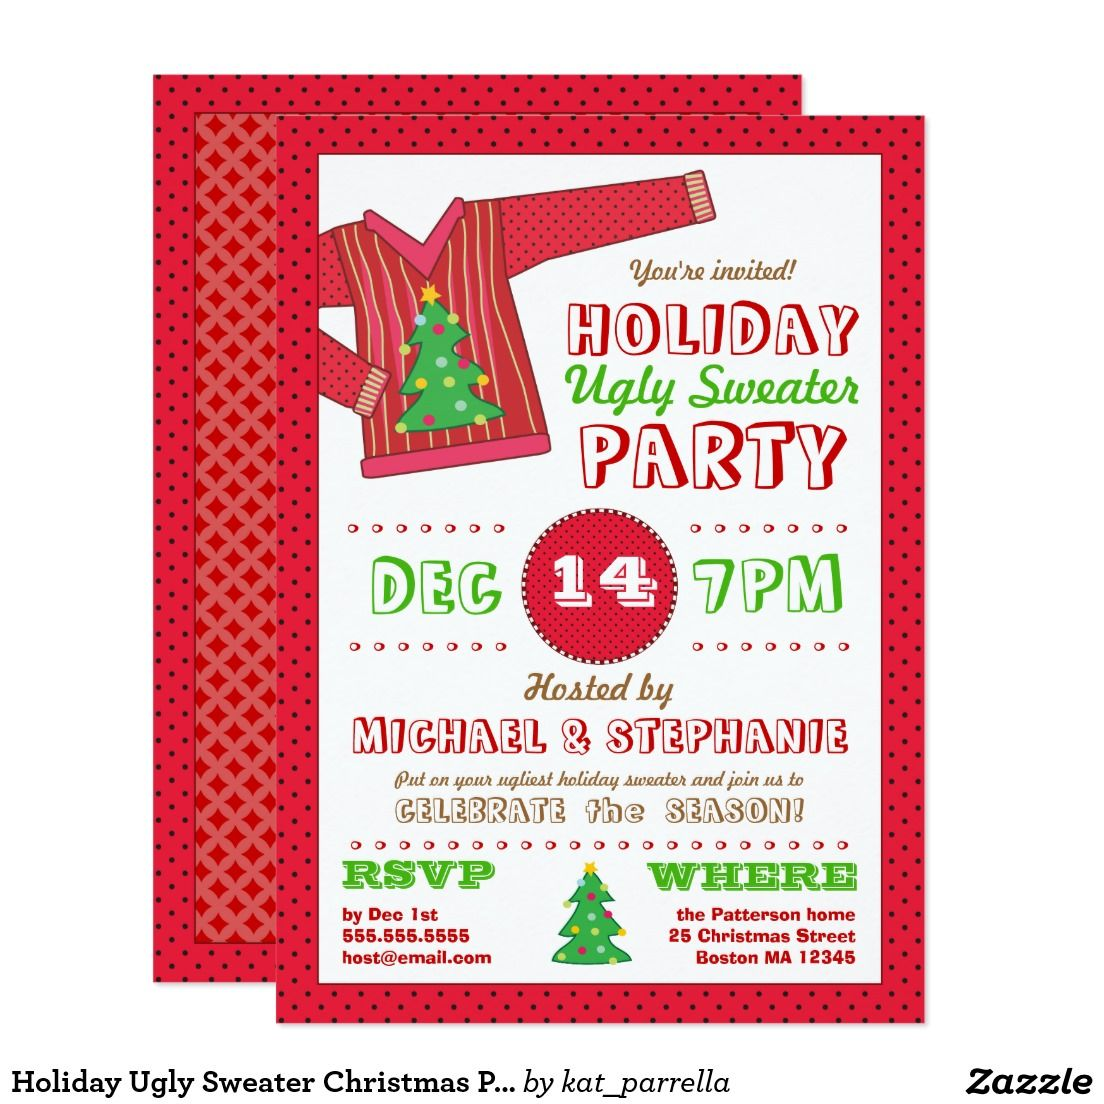 Holiday Ugly Sweater Christmas Party Invitation | Christmas Party ...